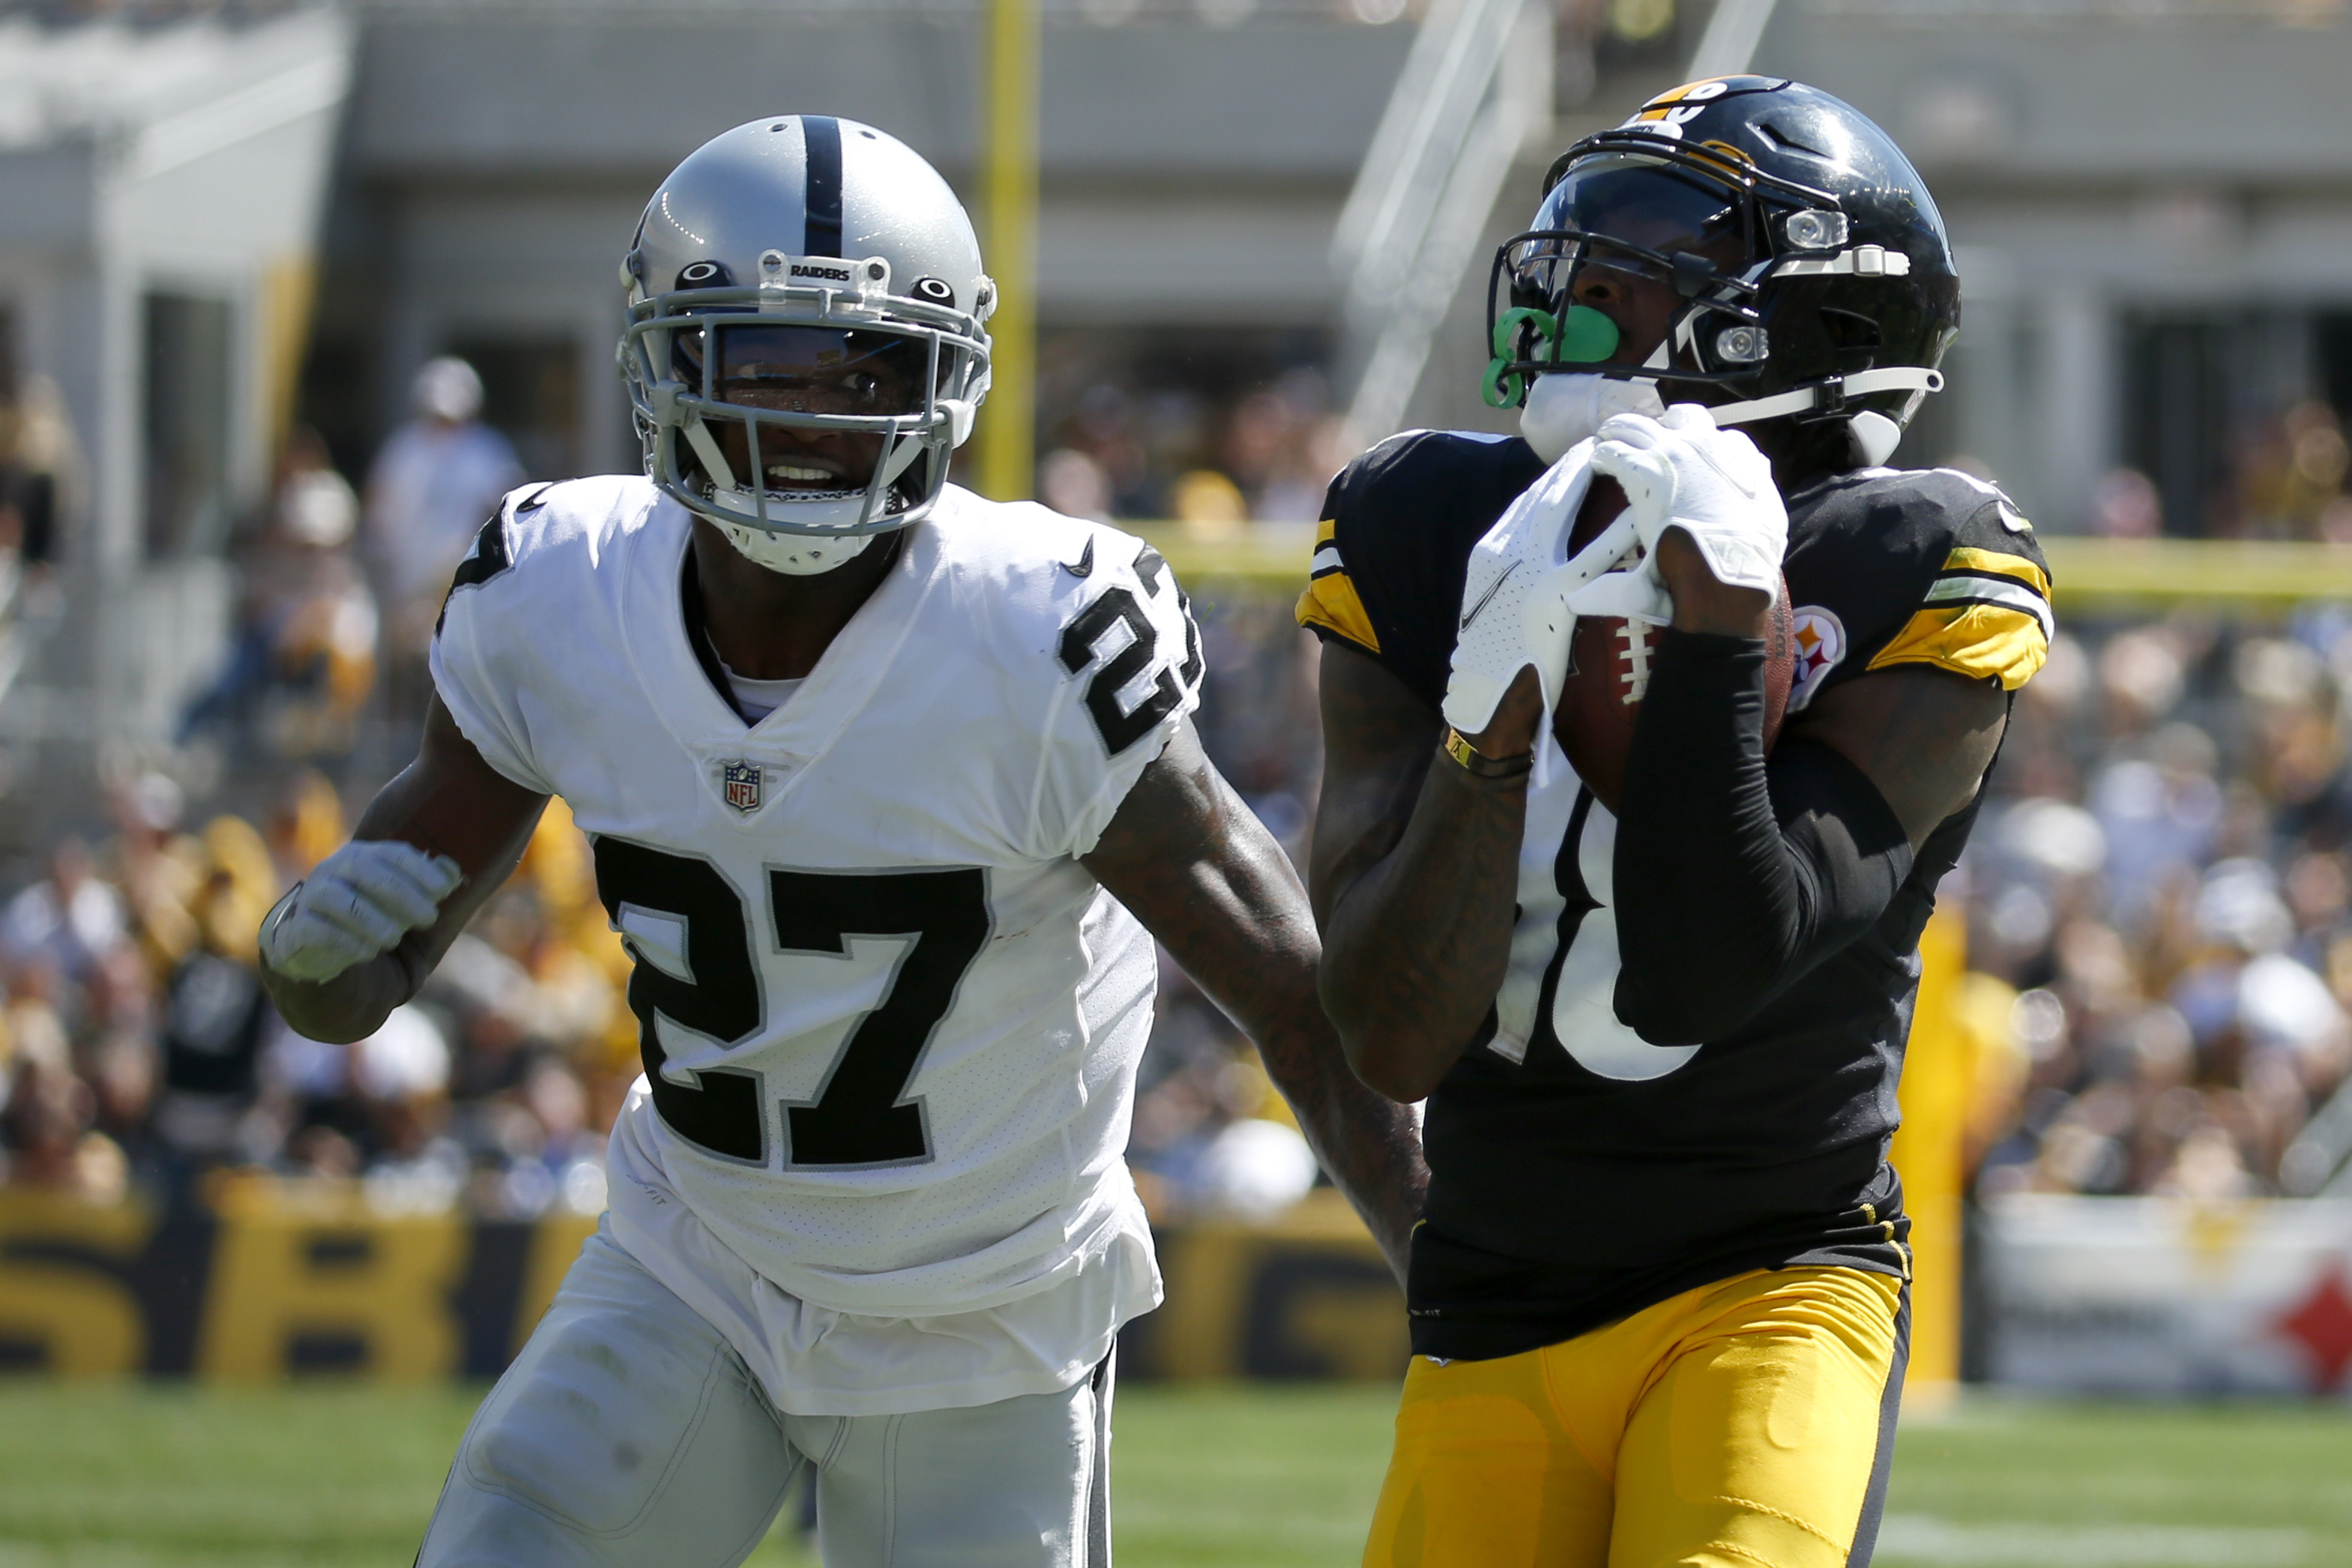 Wide receiver Diontae Johnson #18 of the Pittsburgh Steelers makes a catch against cornerback Trayvon Mullen Jr. #27 of the Las Vegas Raiders in the first quarter of the game at Heinz Field on September 19, 2021 in Pittsburgh, Pennsylvania.